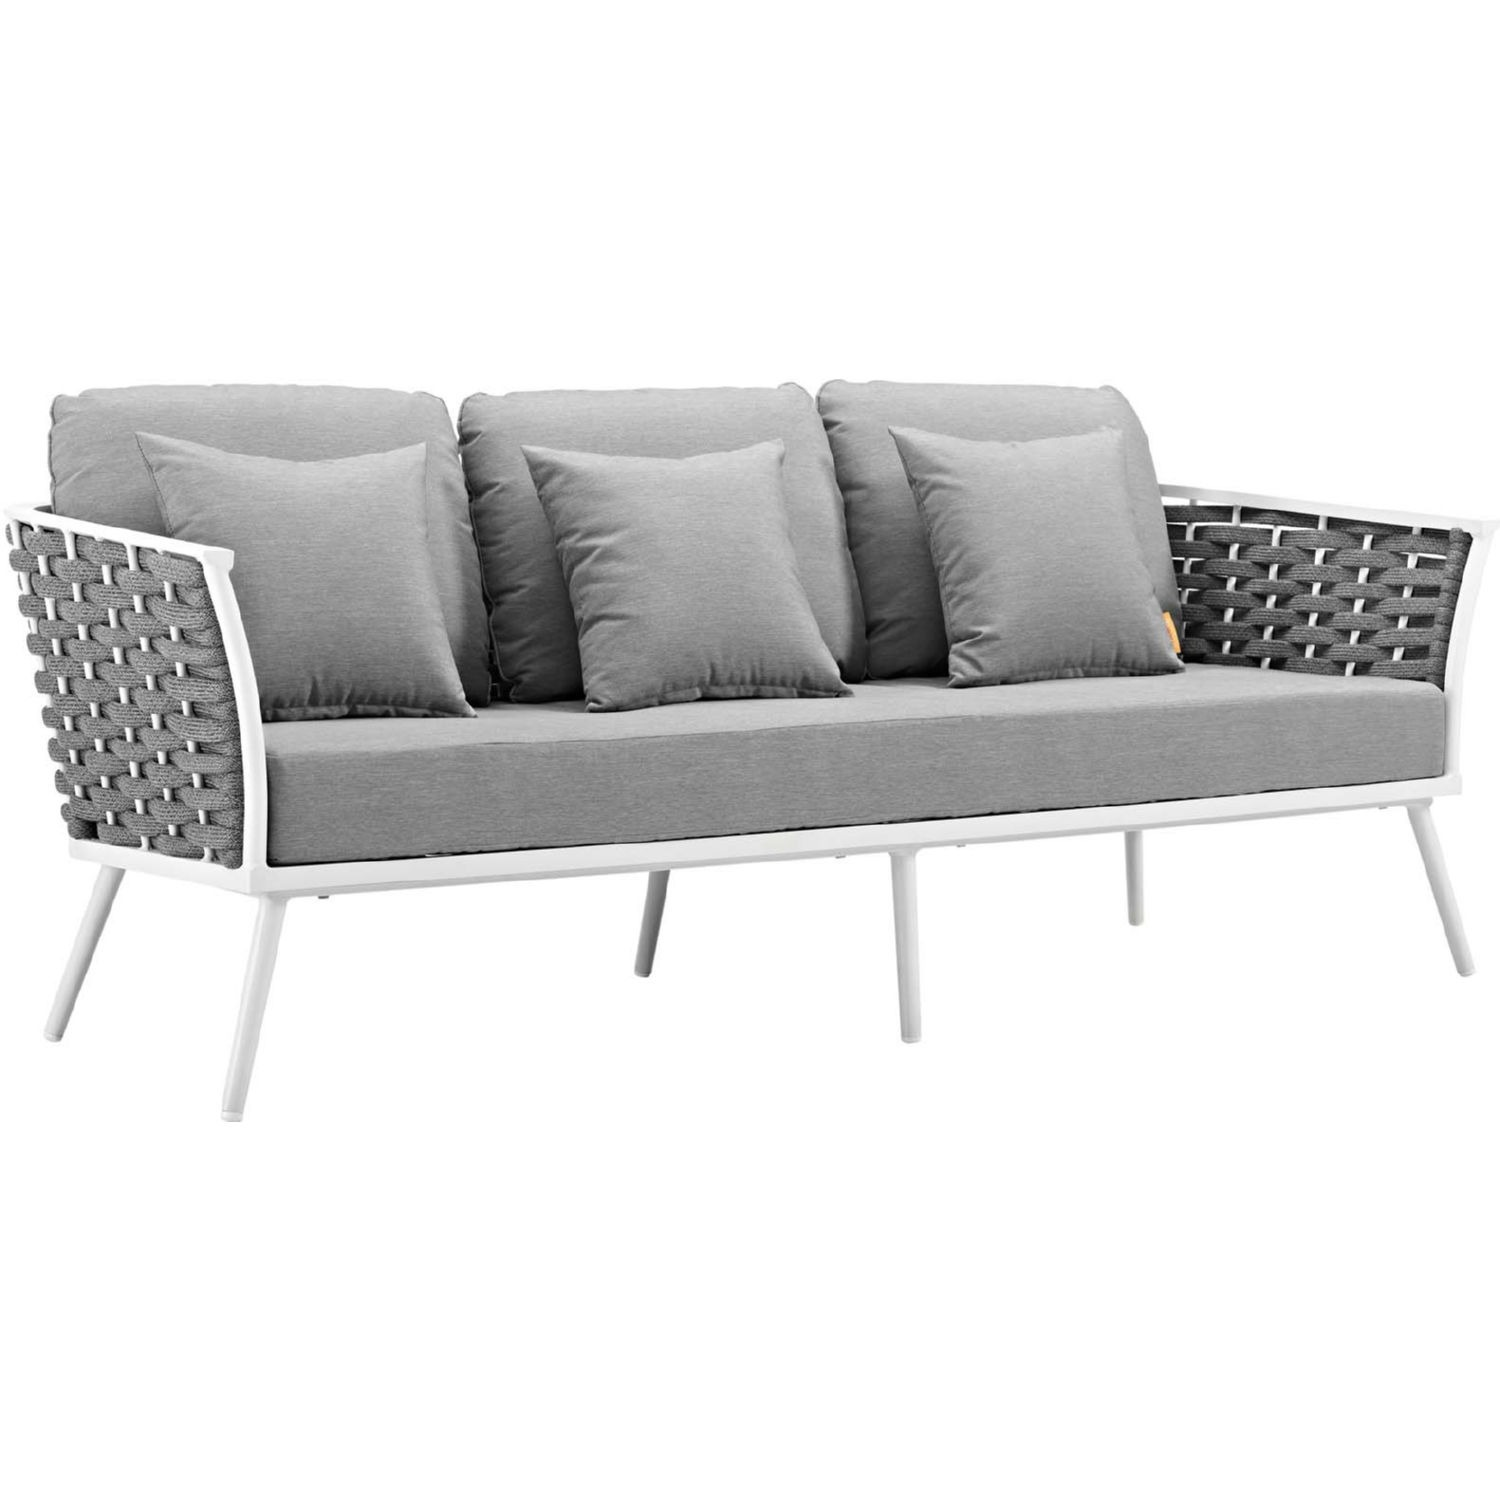 2-Piece Outdoor Sectional In Gray Foam Padding - image-3